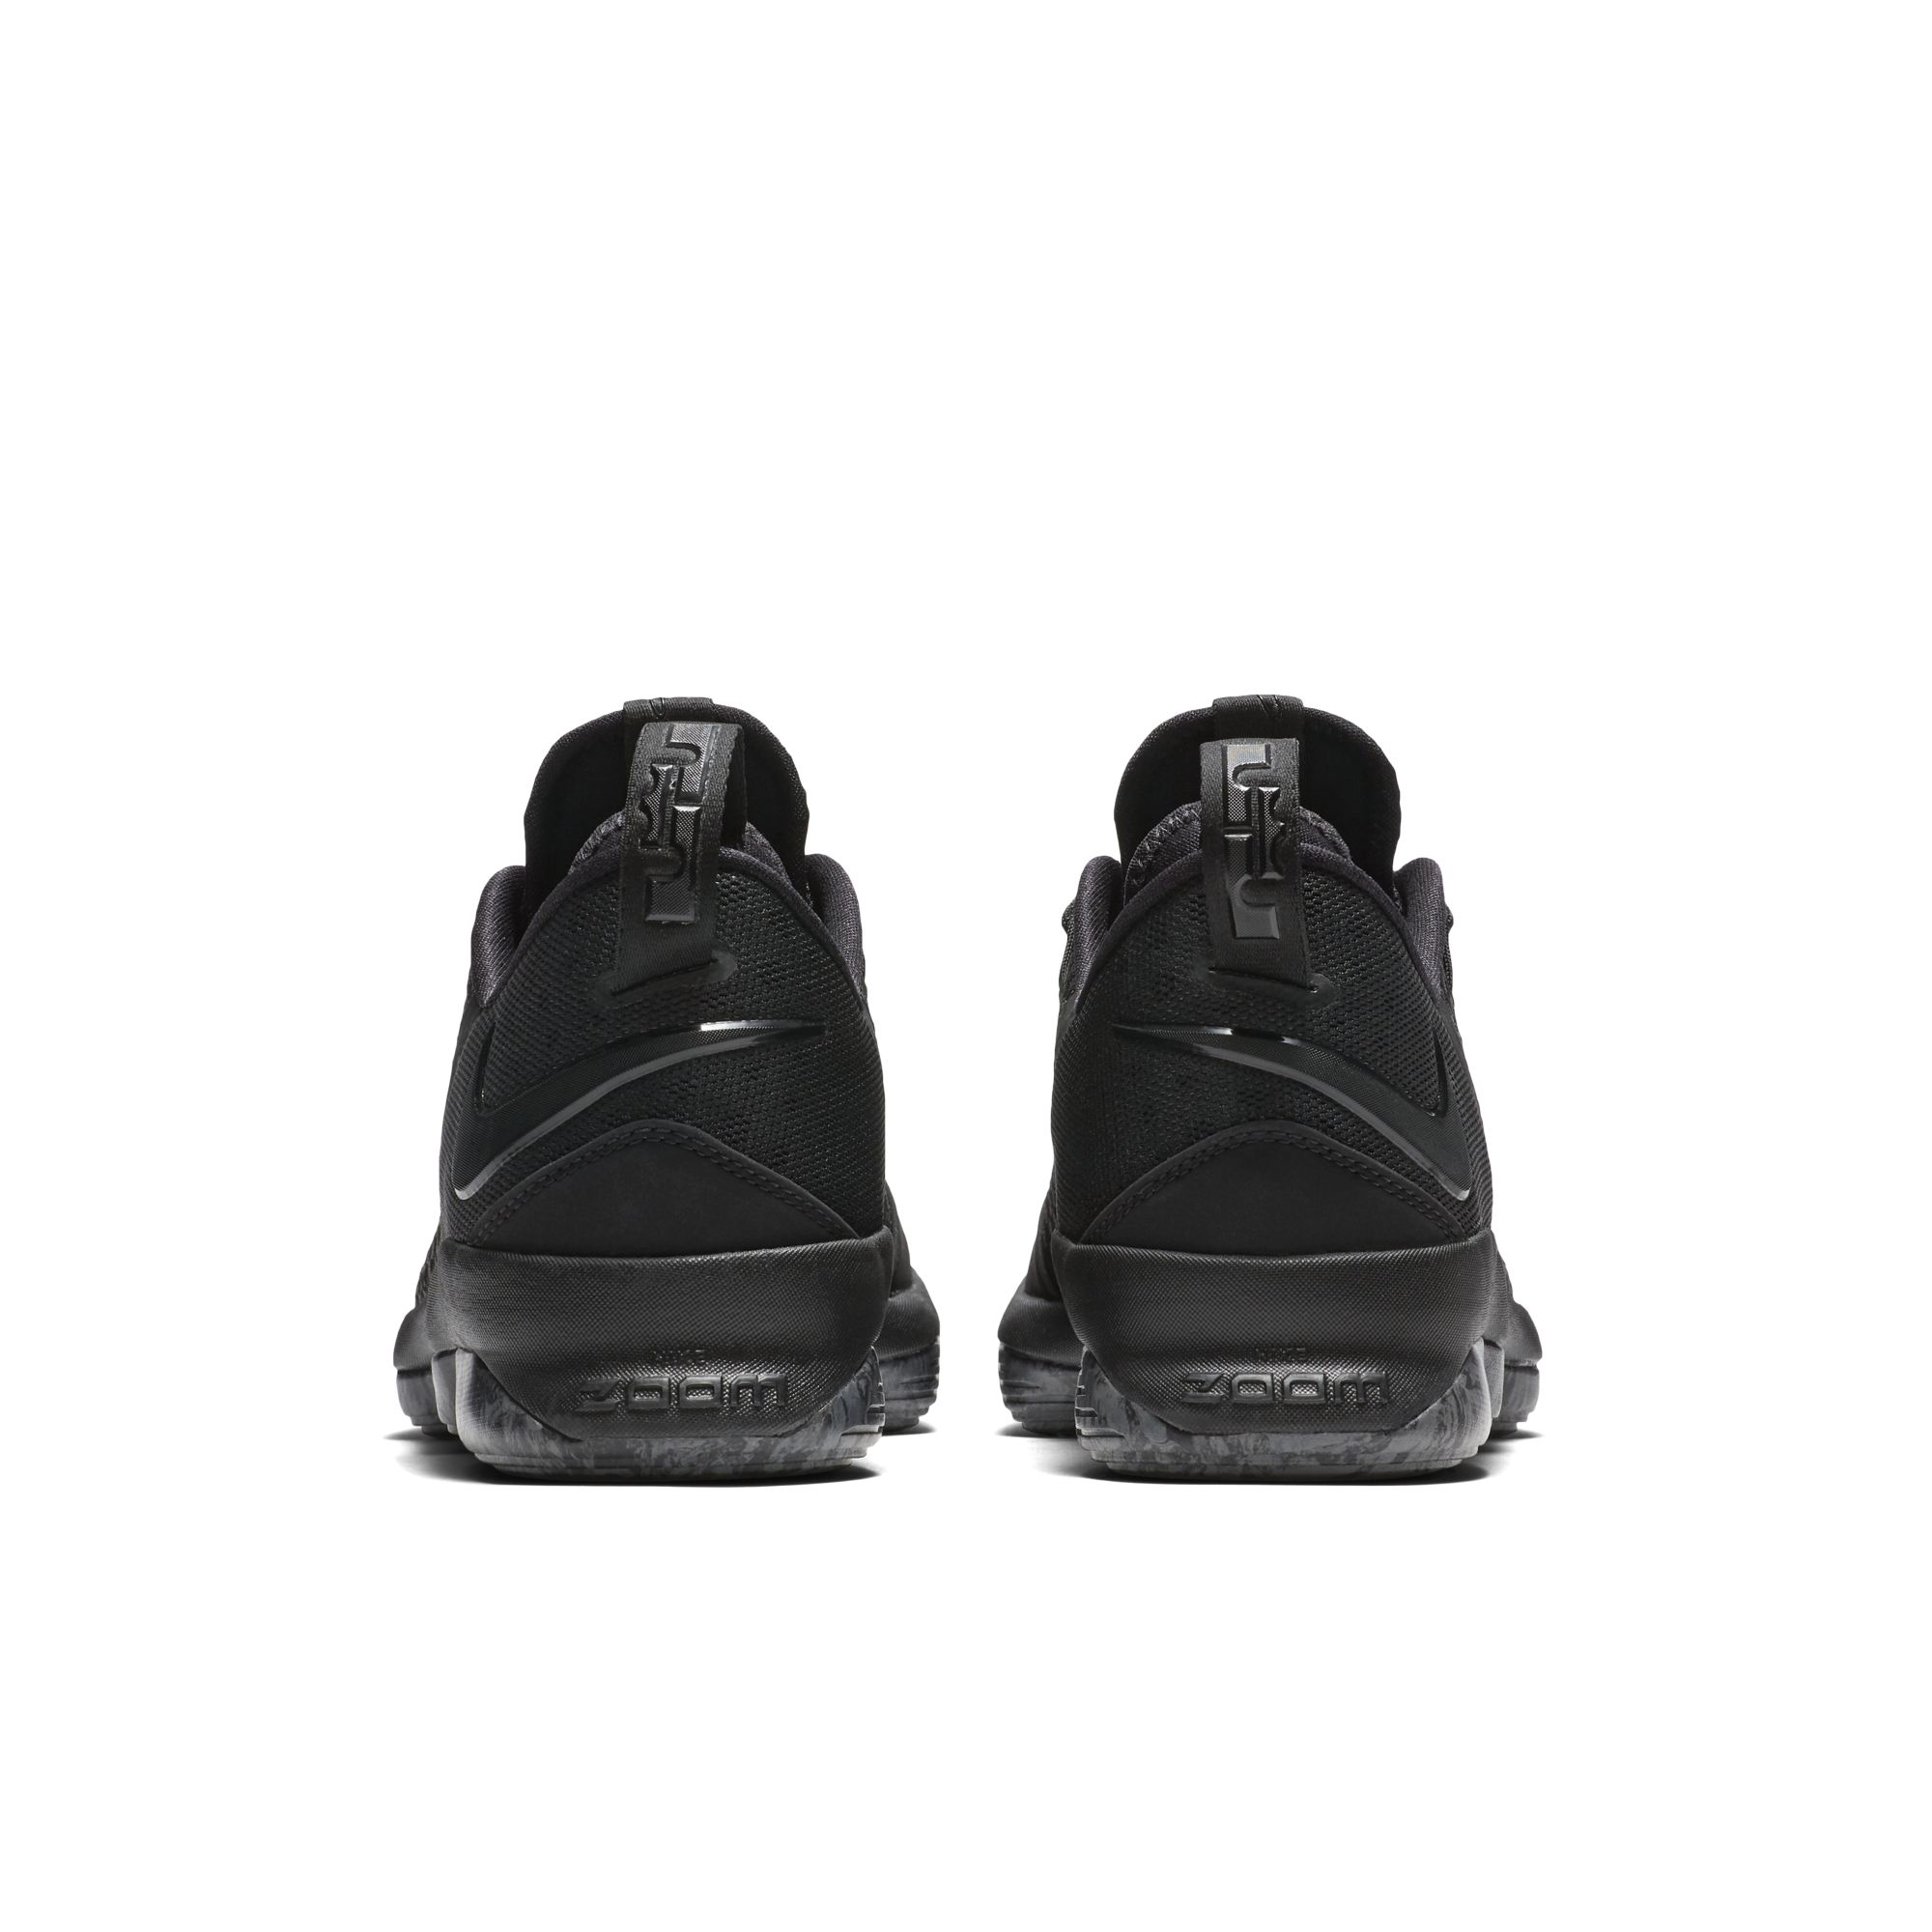 1f6255a843ea Nike-LeBron-14-Low-Black-5 - WearTesters